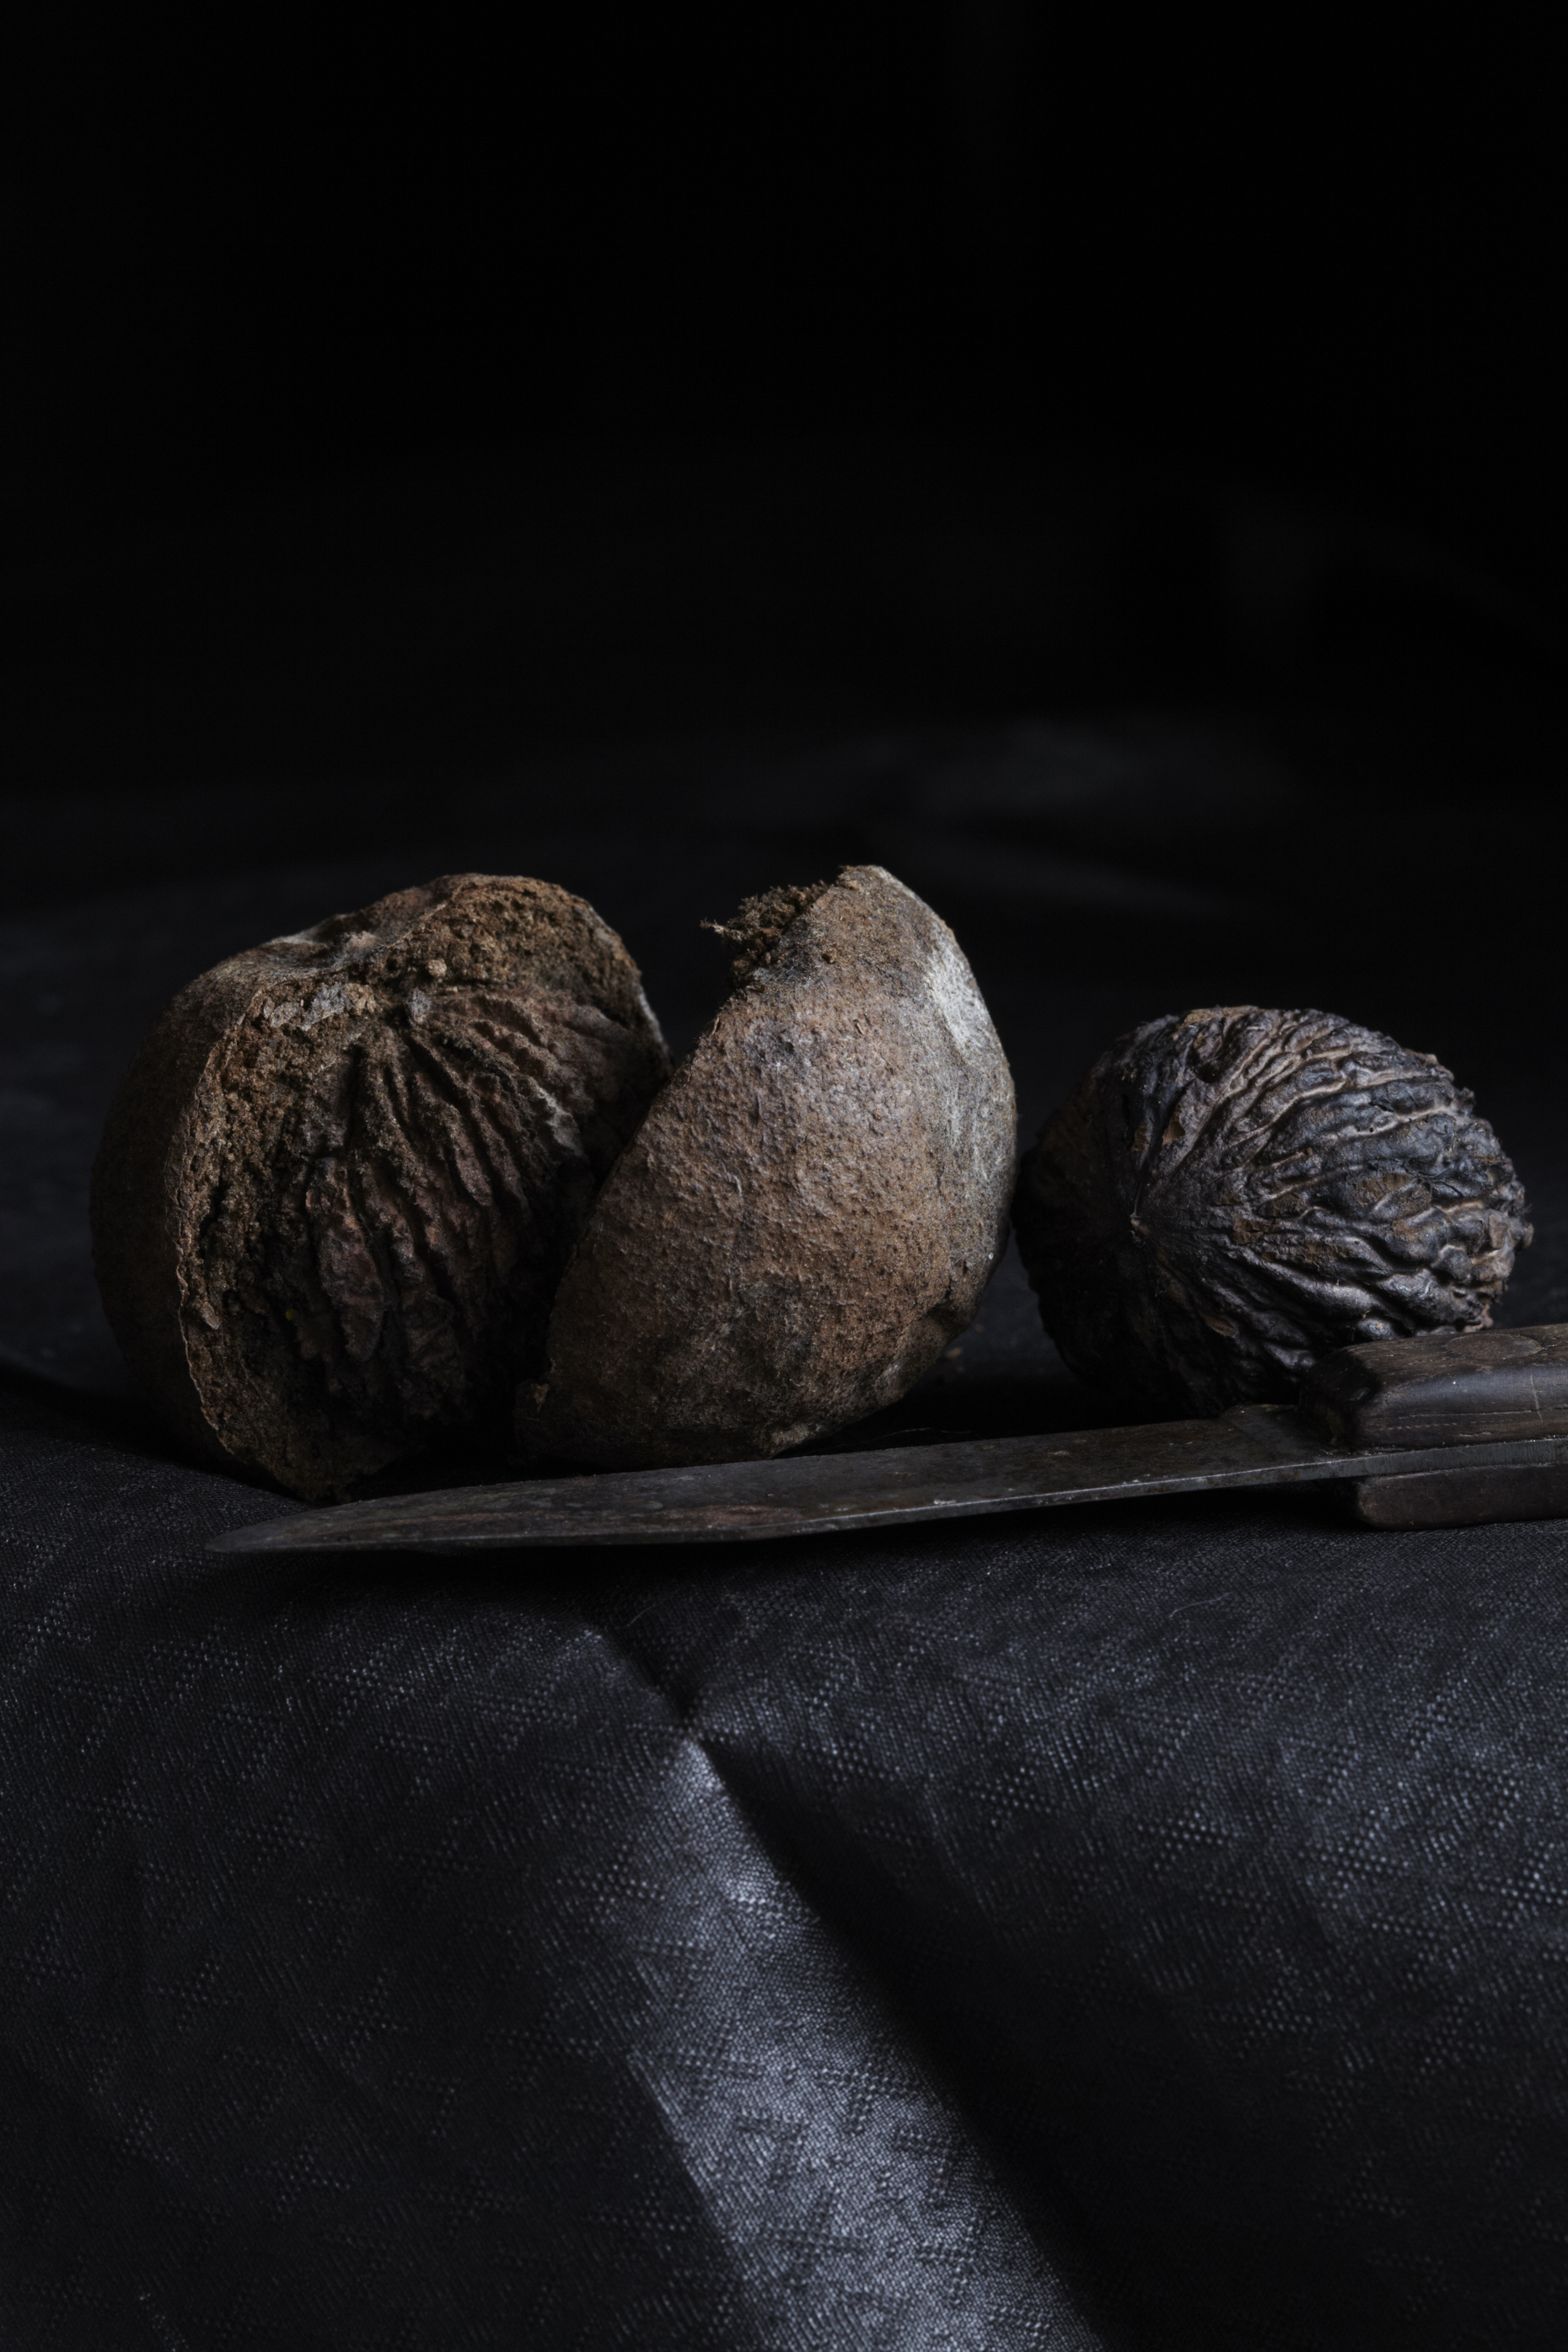 wild black walnuts